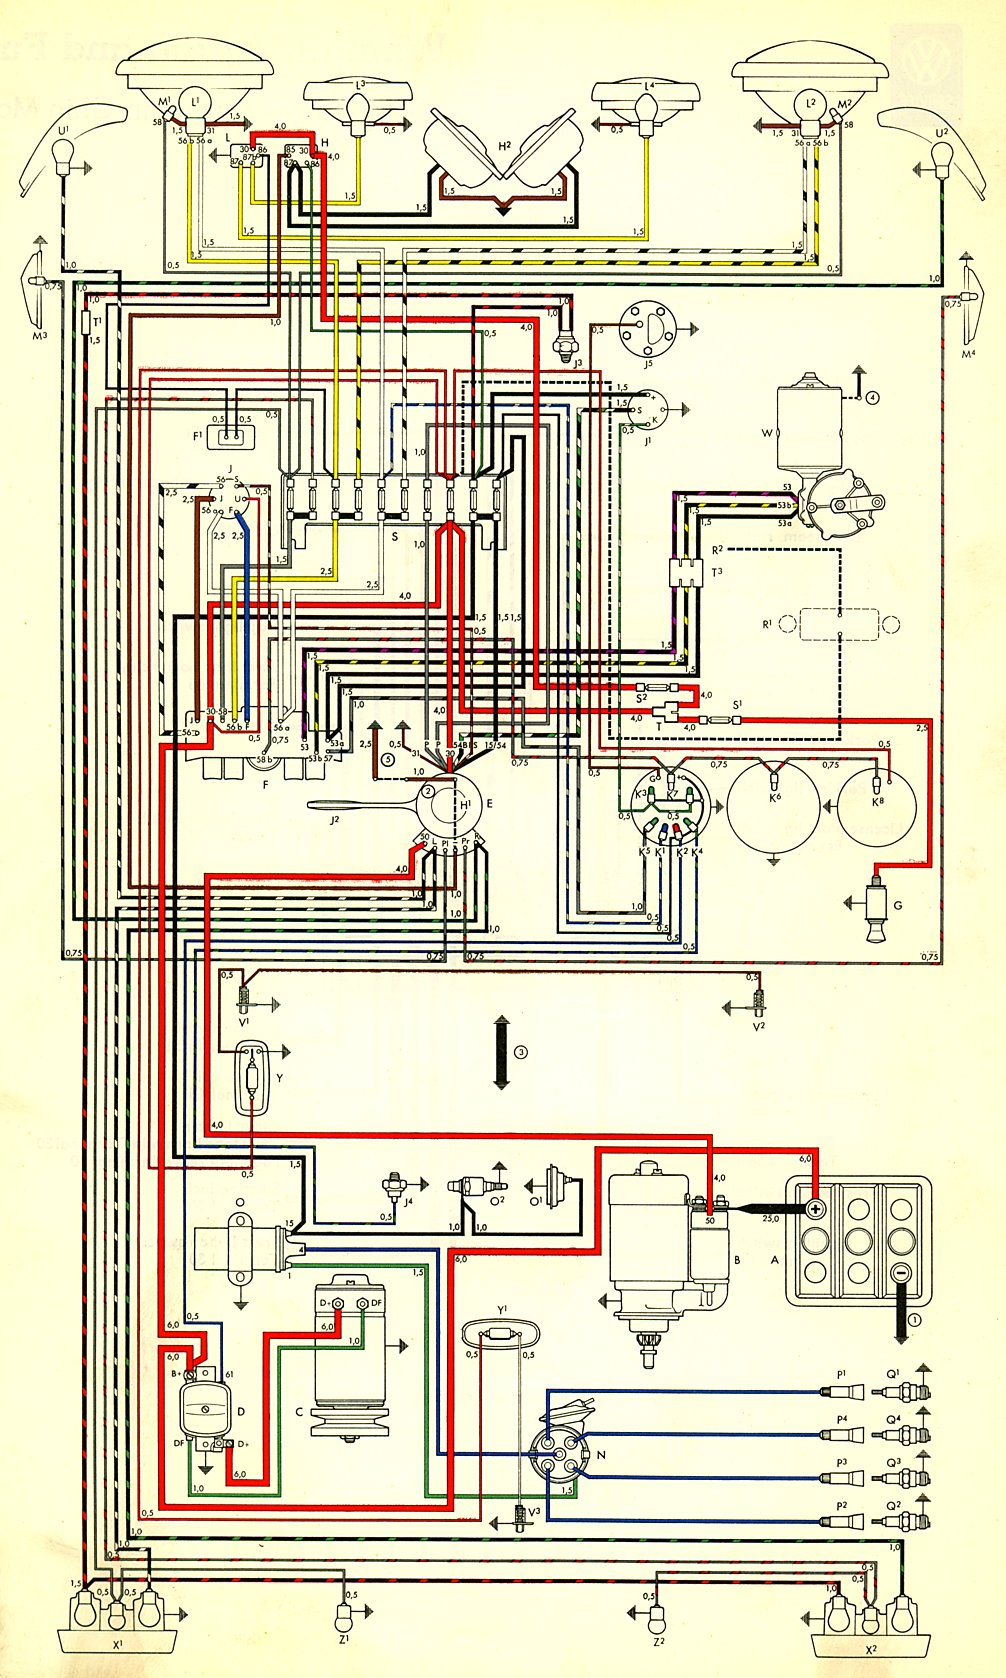 thesamba com type 3 wiring diagrams rh thesamba com 1964 Type 3 Wiring Diagram 1968 vw type 3 wiring diagram